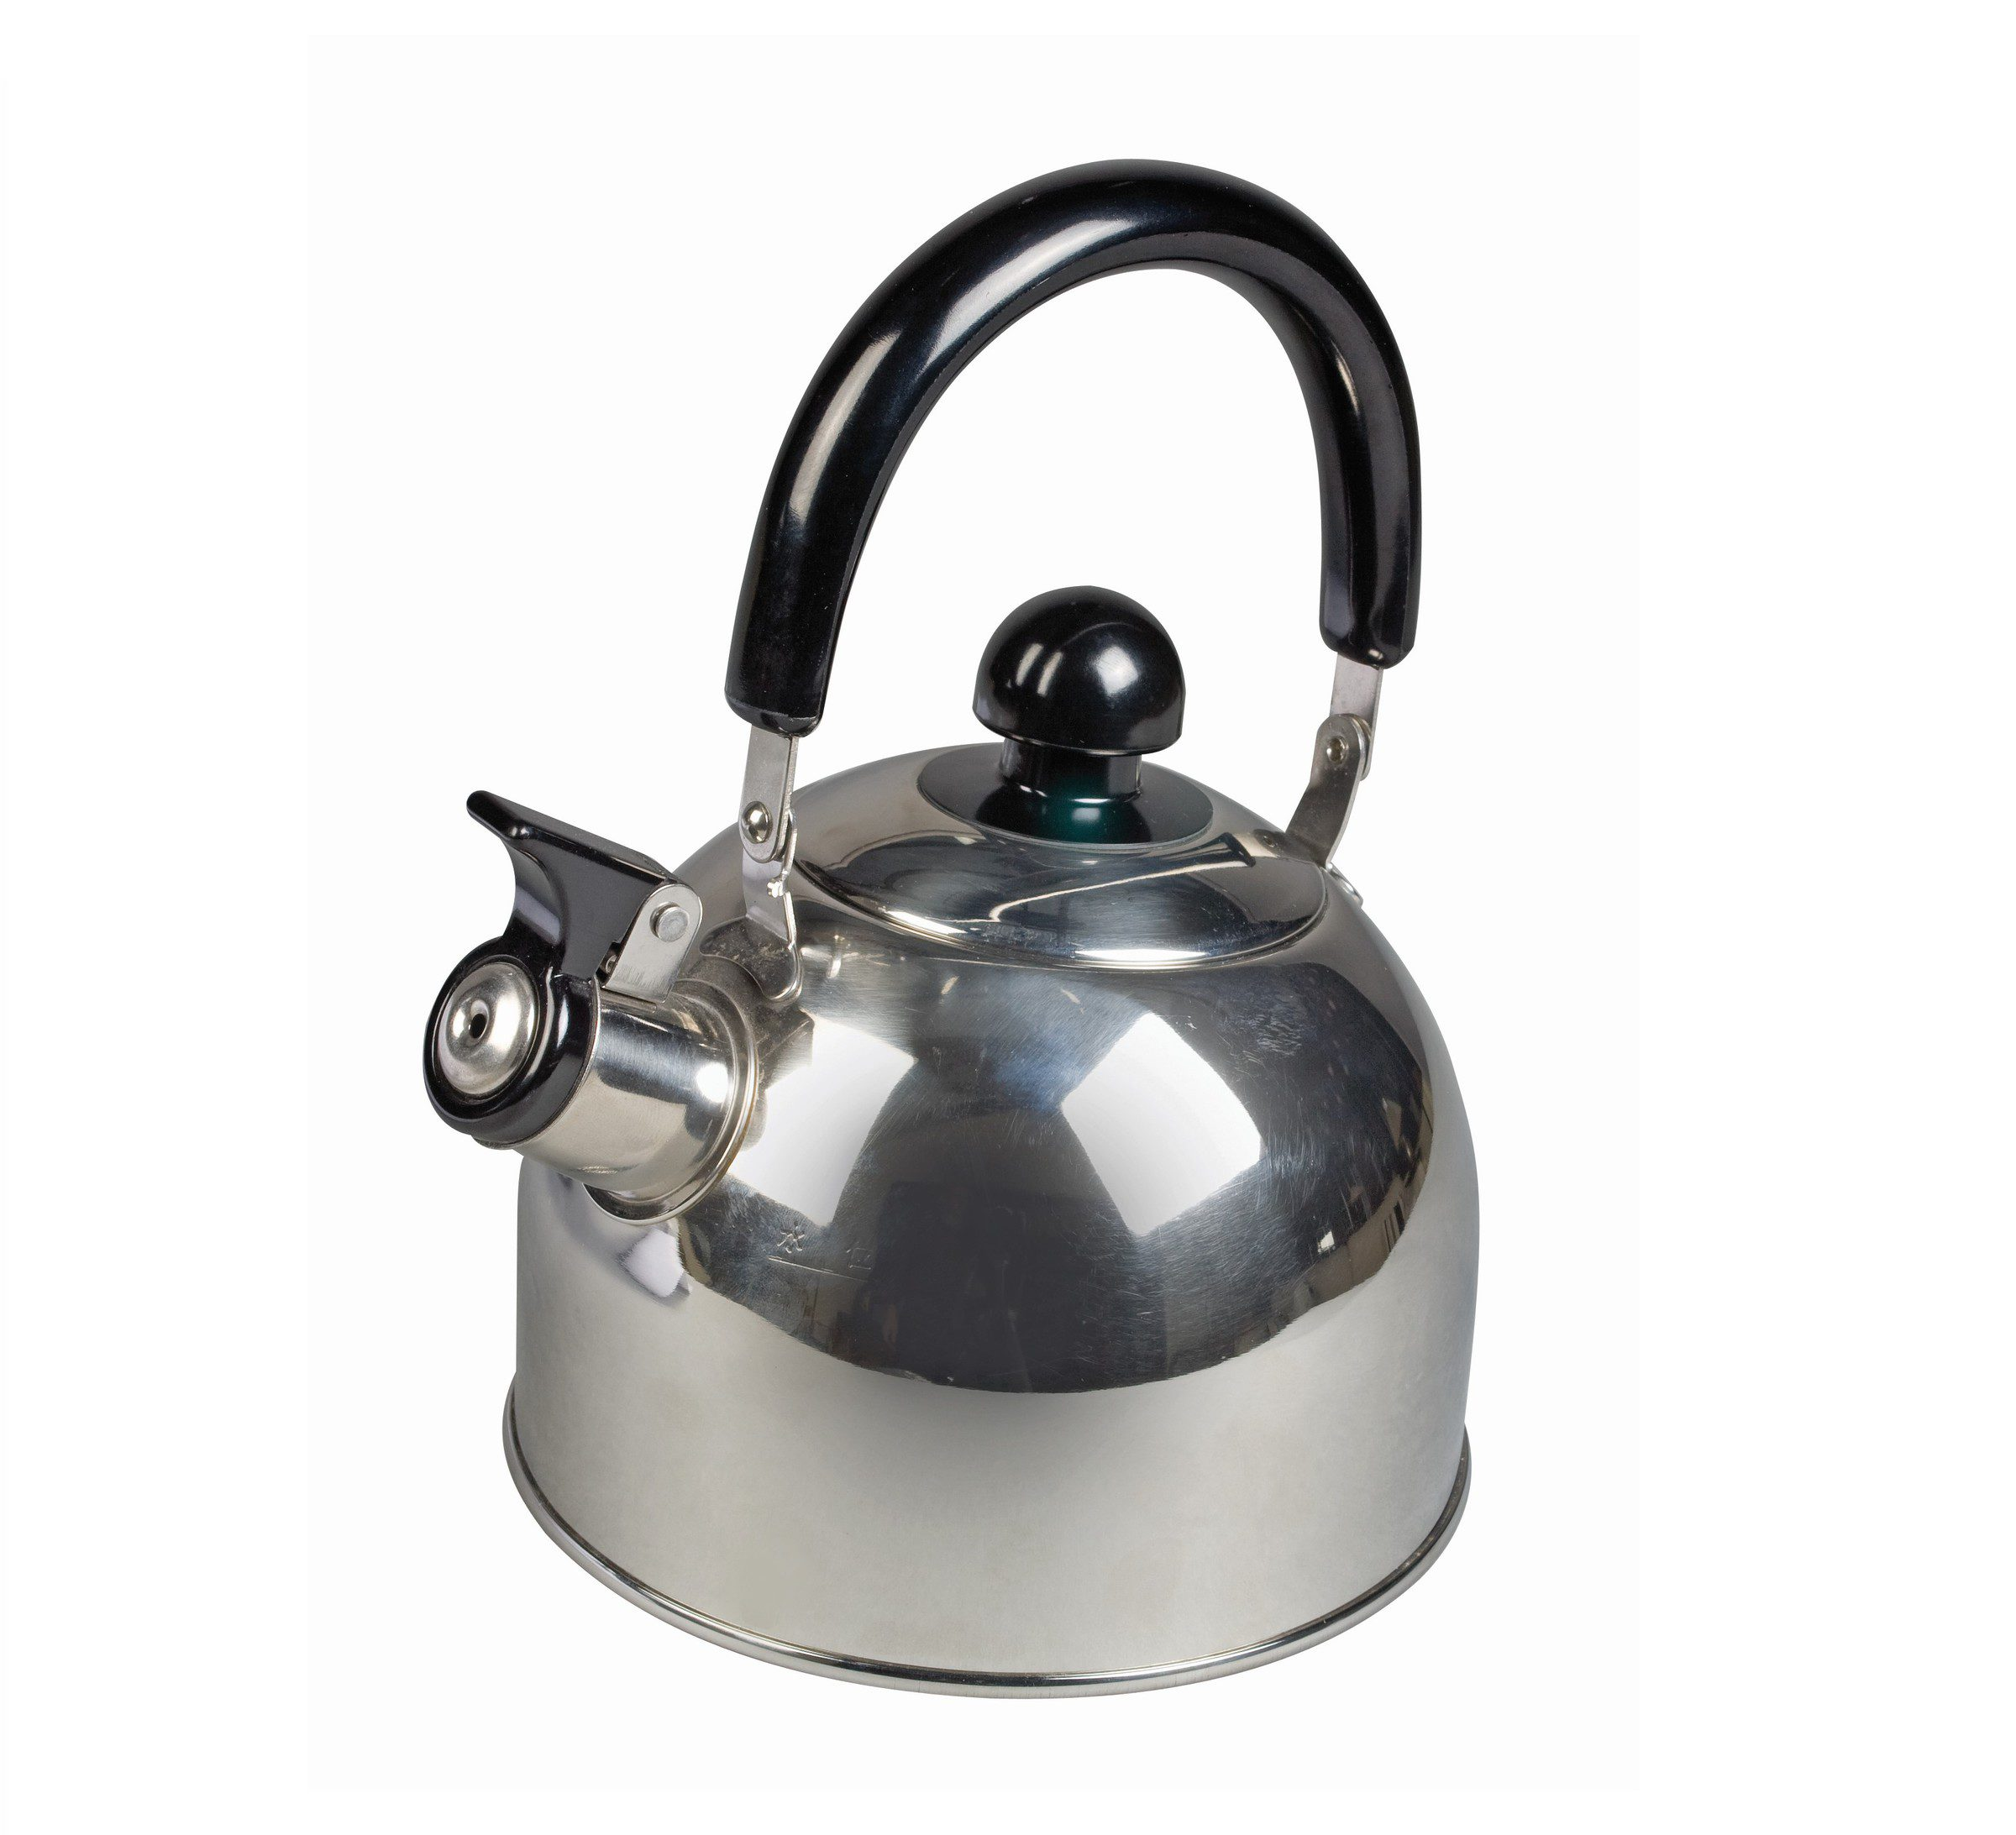 Kampa Polly Stainless Steel Kettle